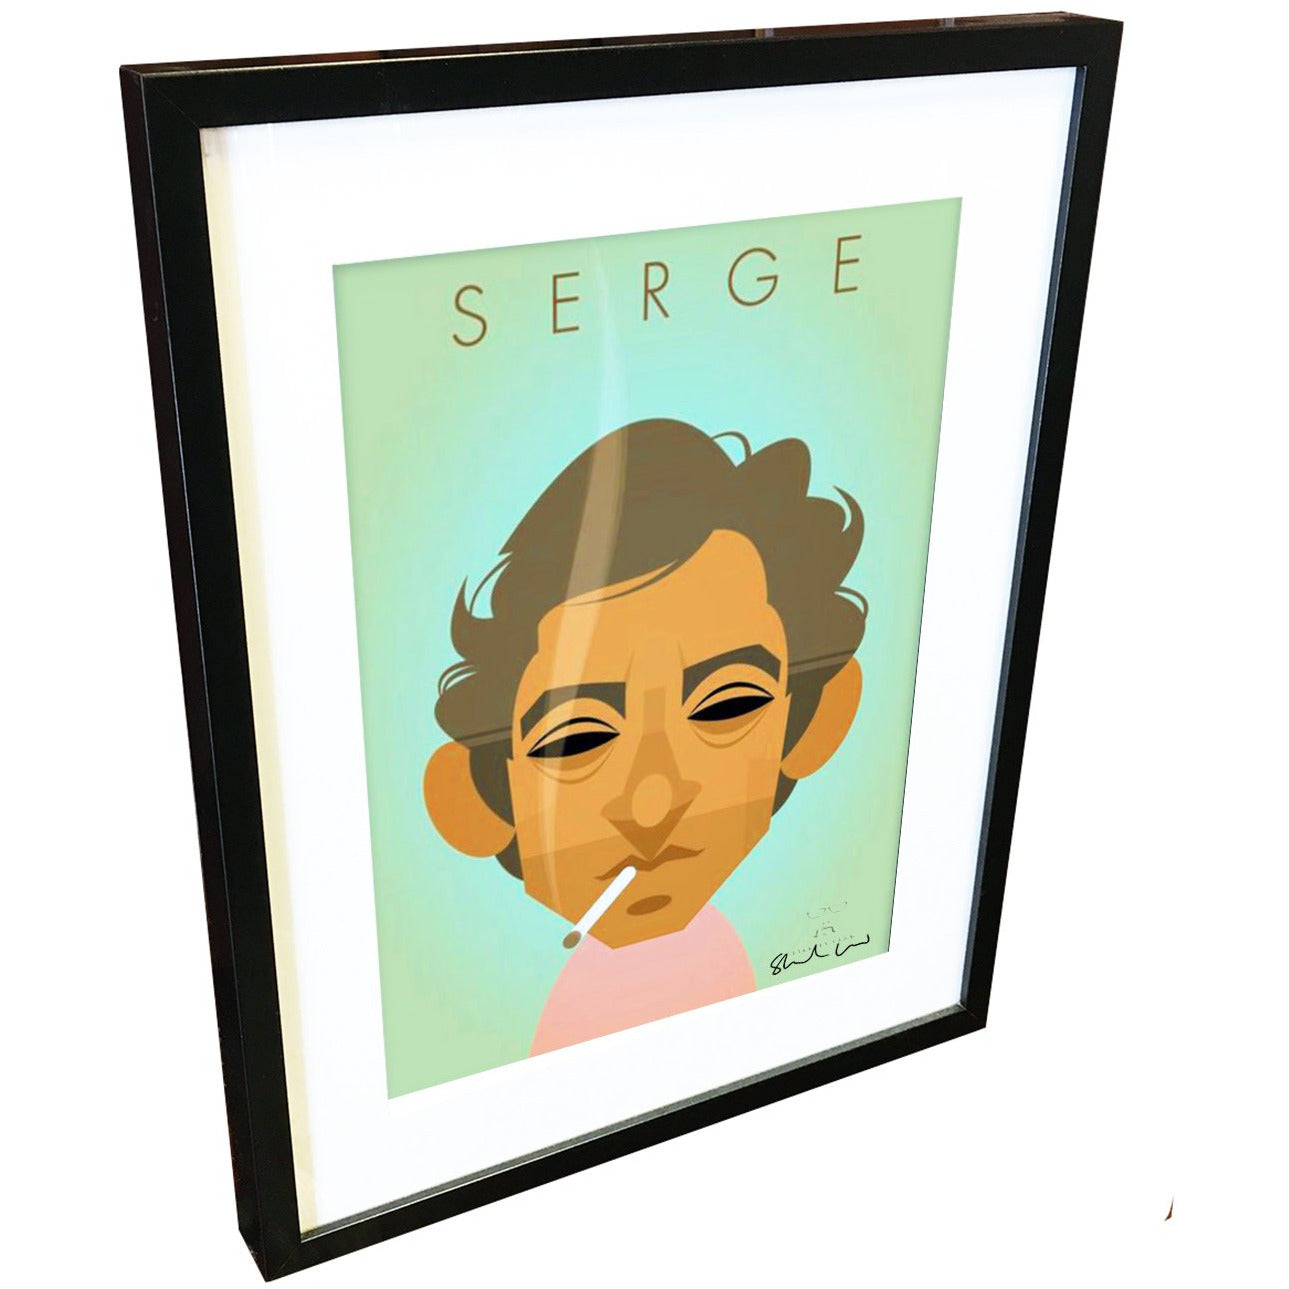 Serge Gainsbourg by Stanley Chow - Signed and stamped fine art print - Egoiste Gallery